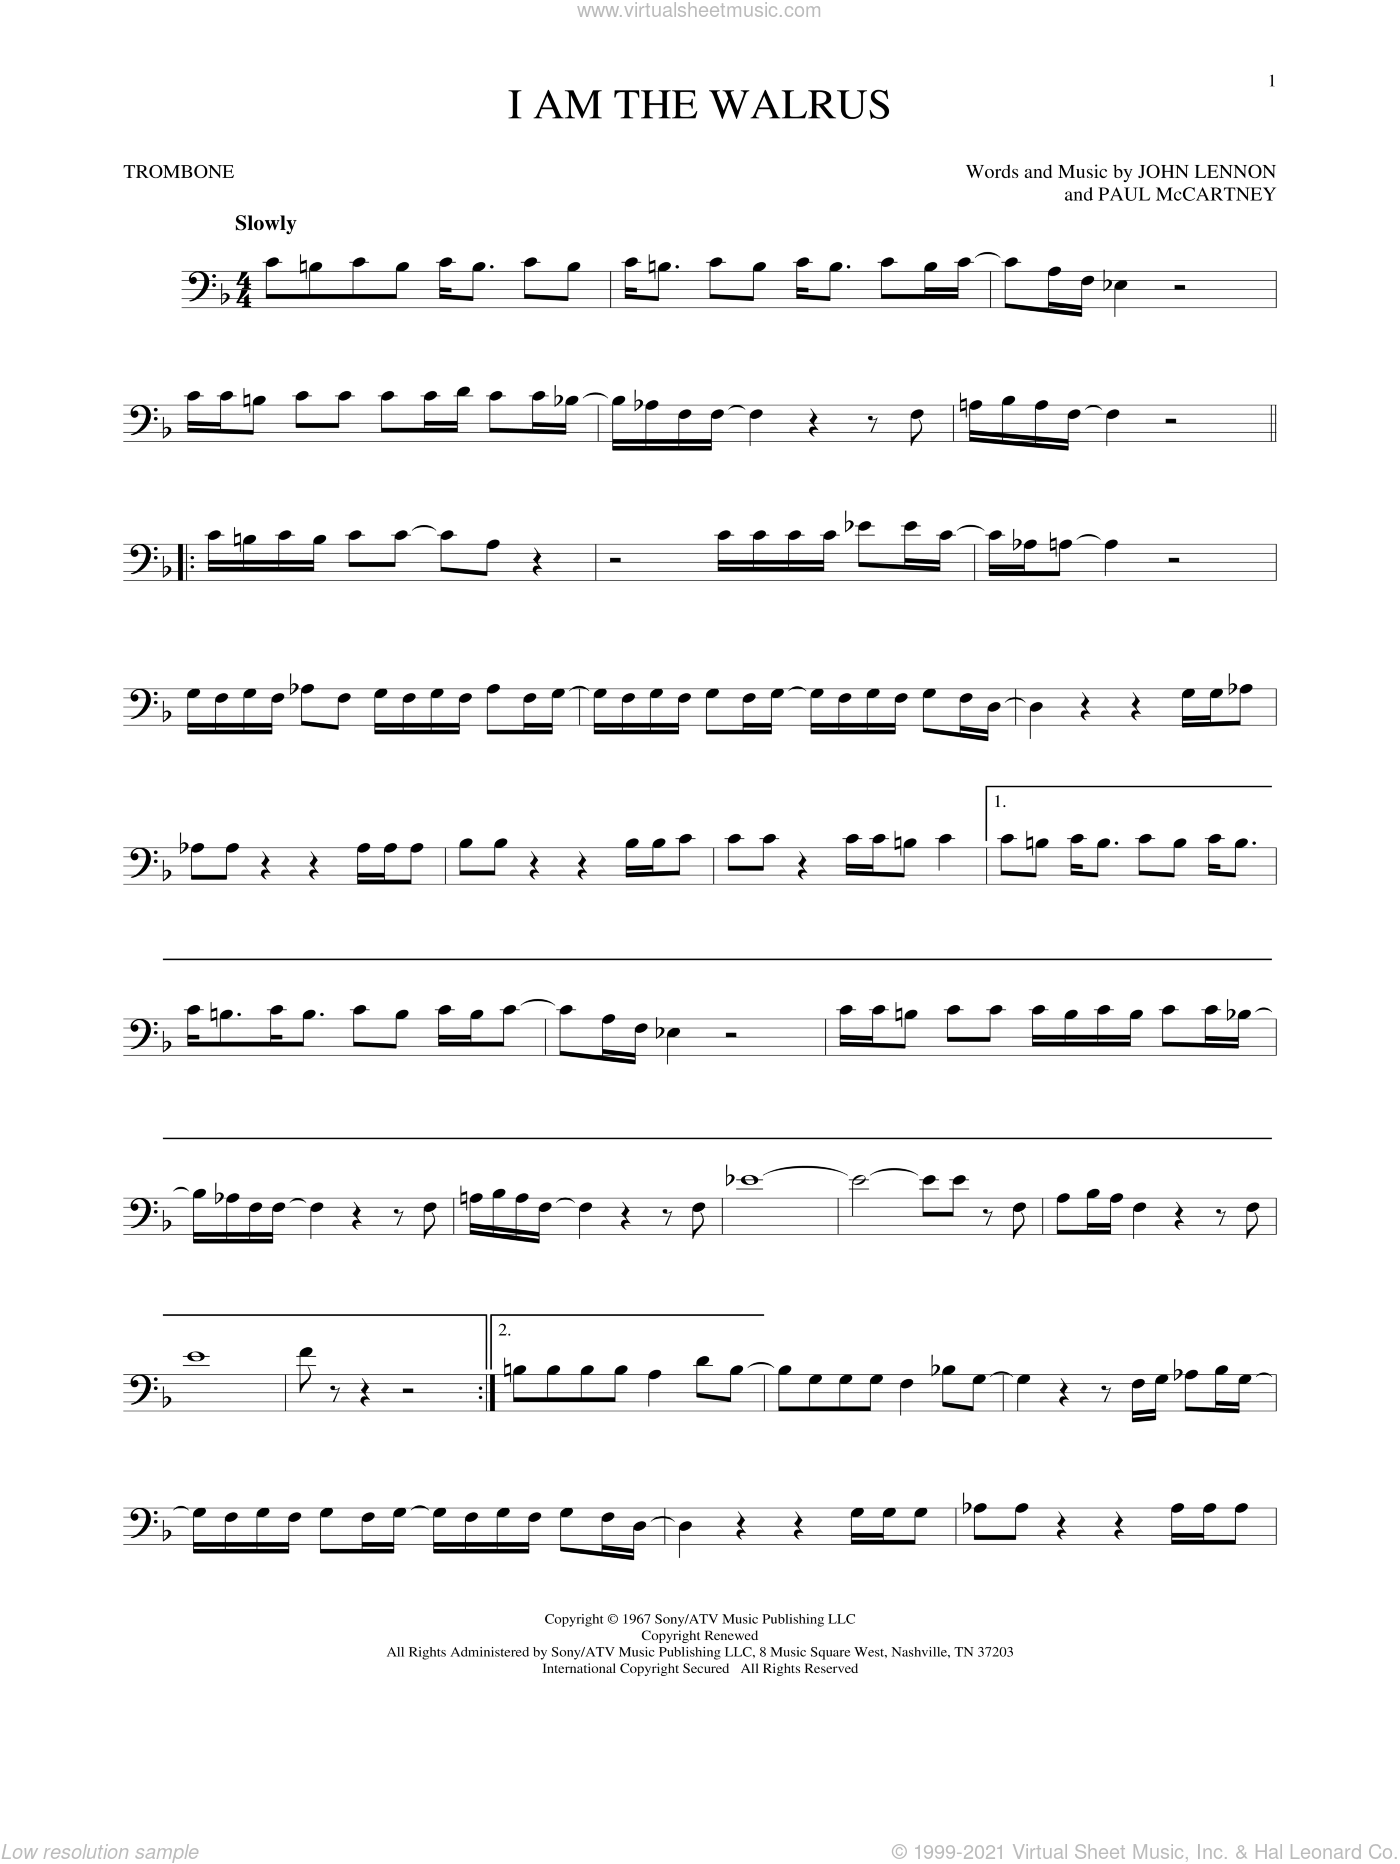 I Am The Walrus sheet music for trombone solo by The Beatles, John Lennon and Paul McCartney, intermediate skill level